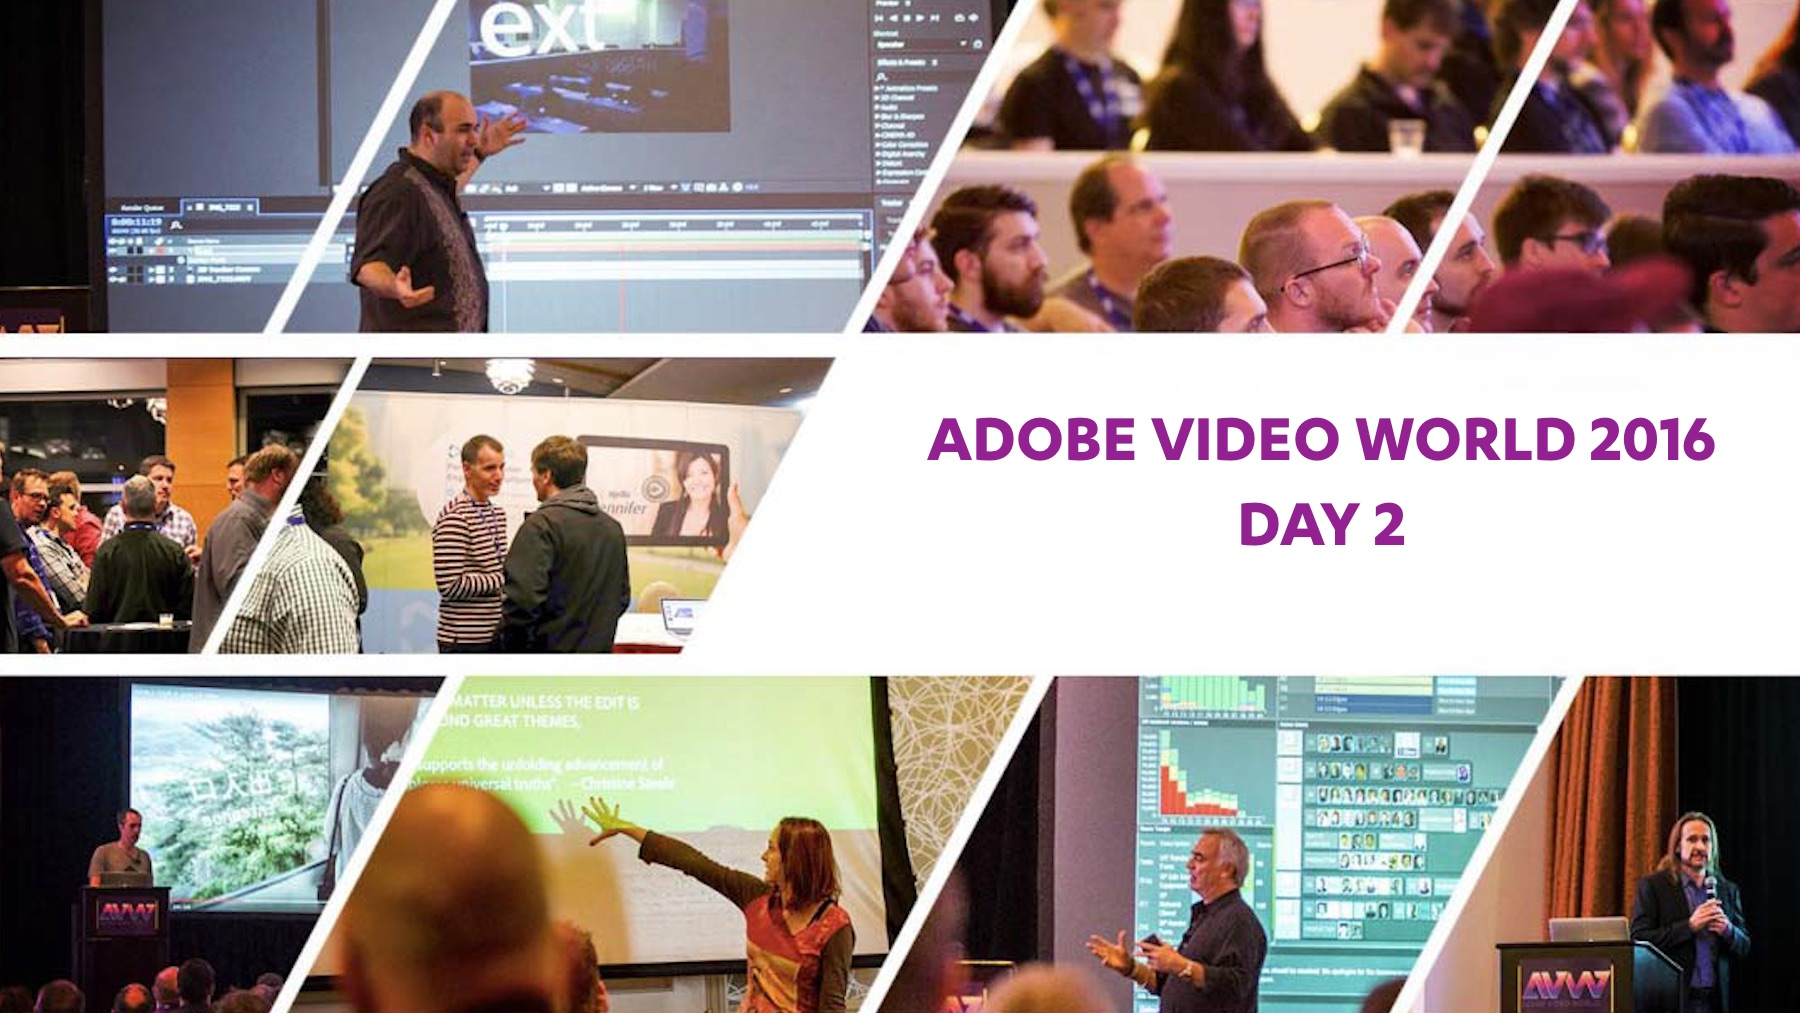 adobe-video-world-2016-day-2